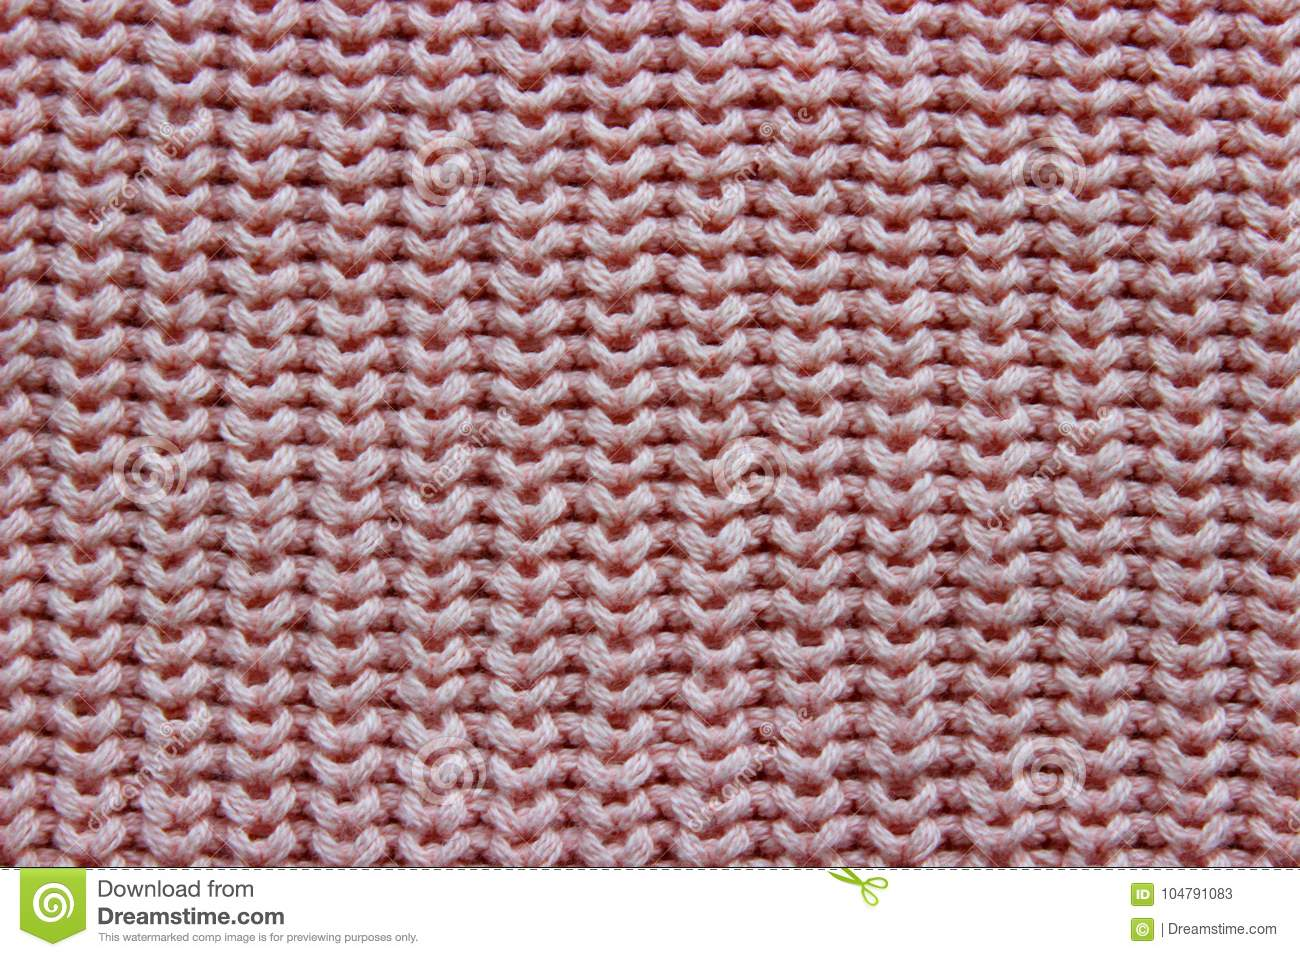 9e5f3147d5f Wool texture, wool knitted fabric close up, pink textile. More similar stock  images